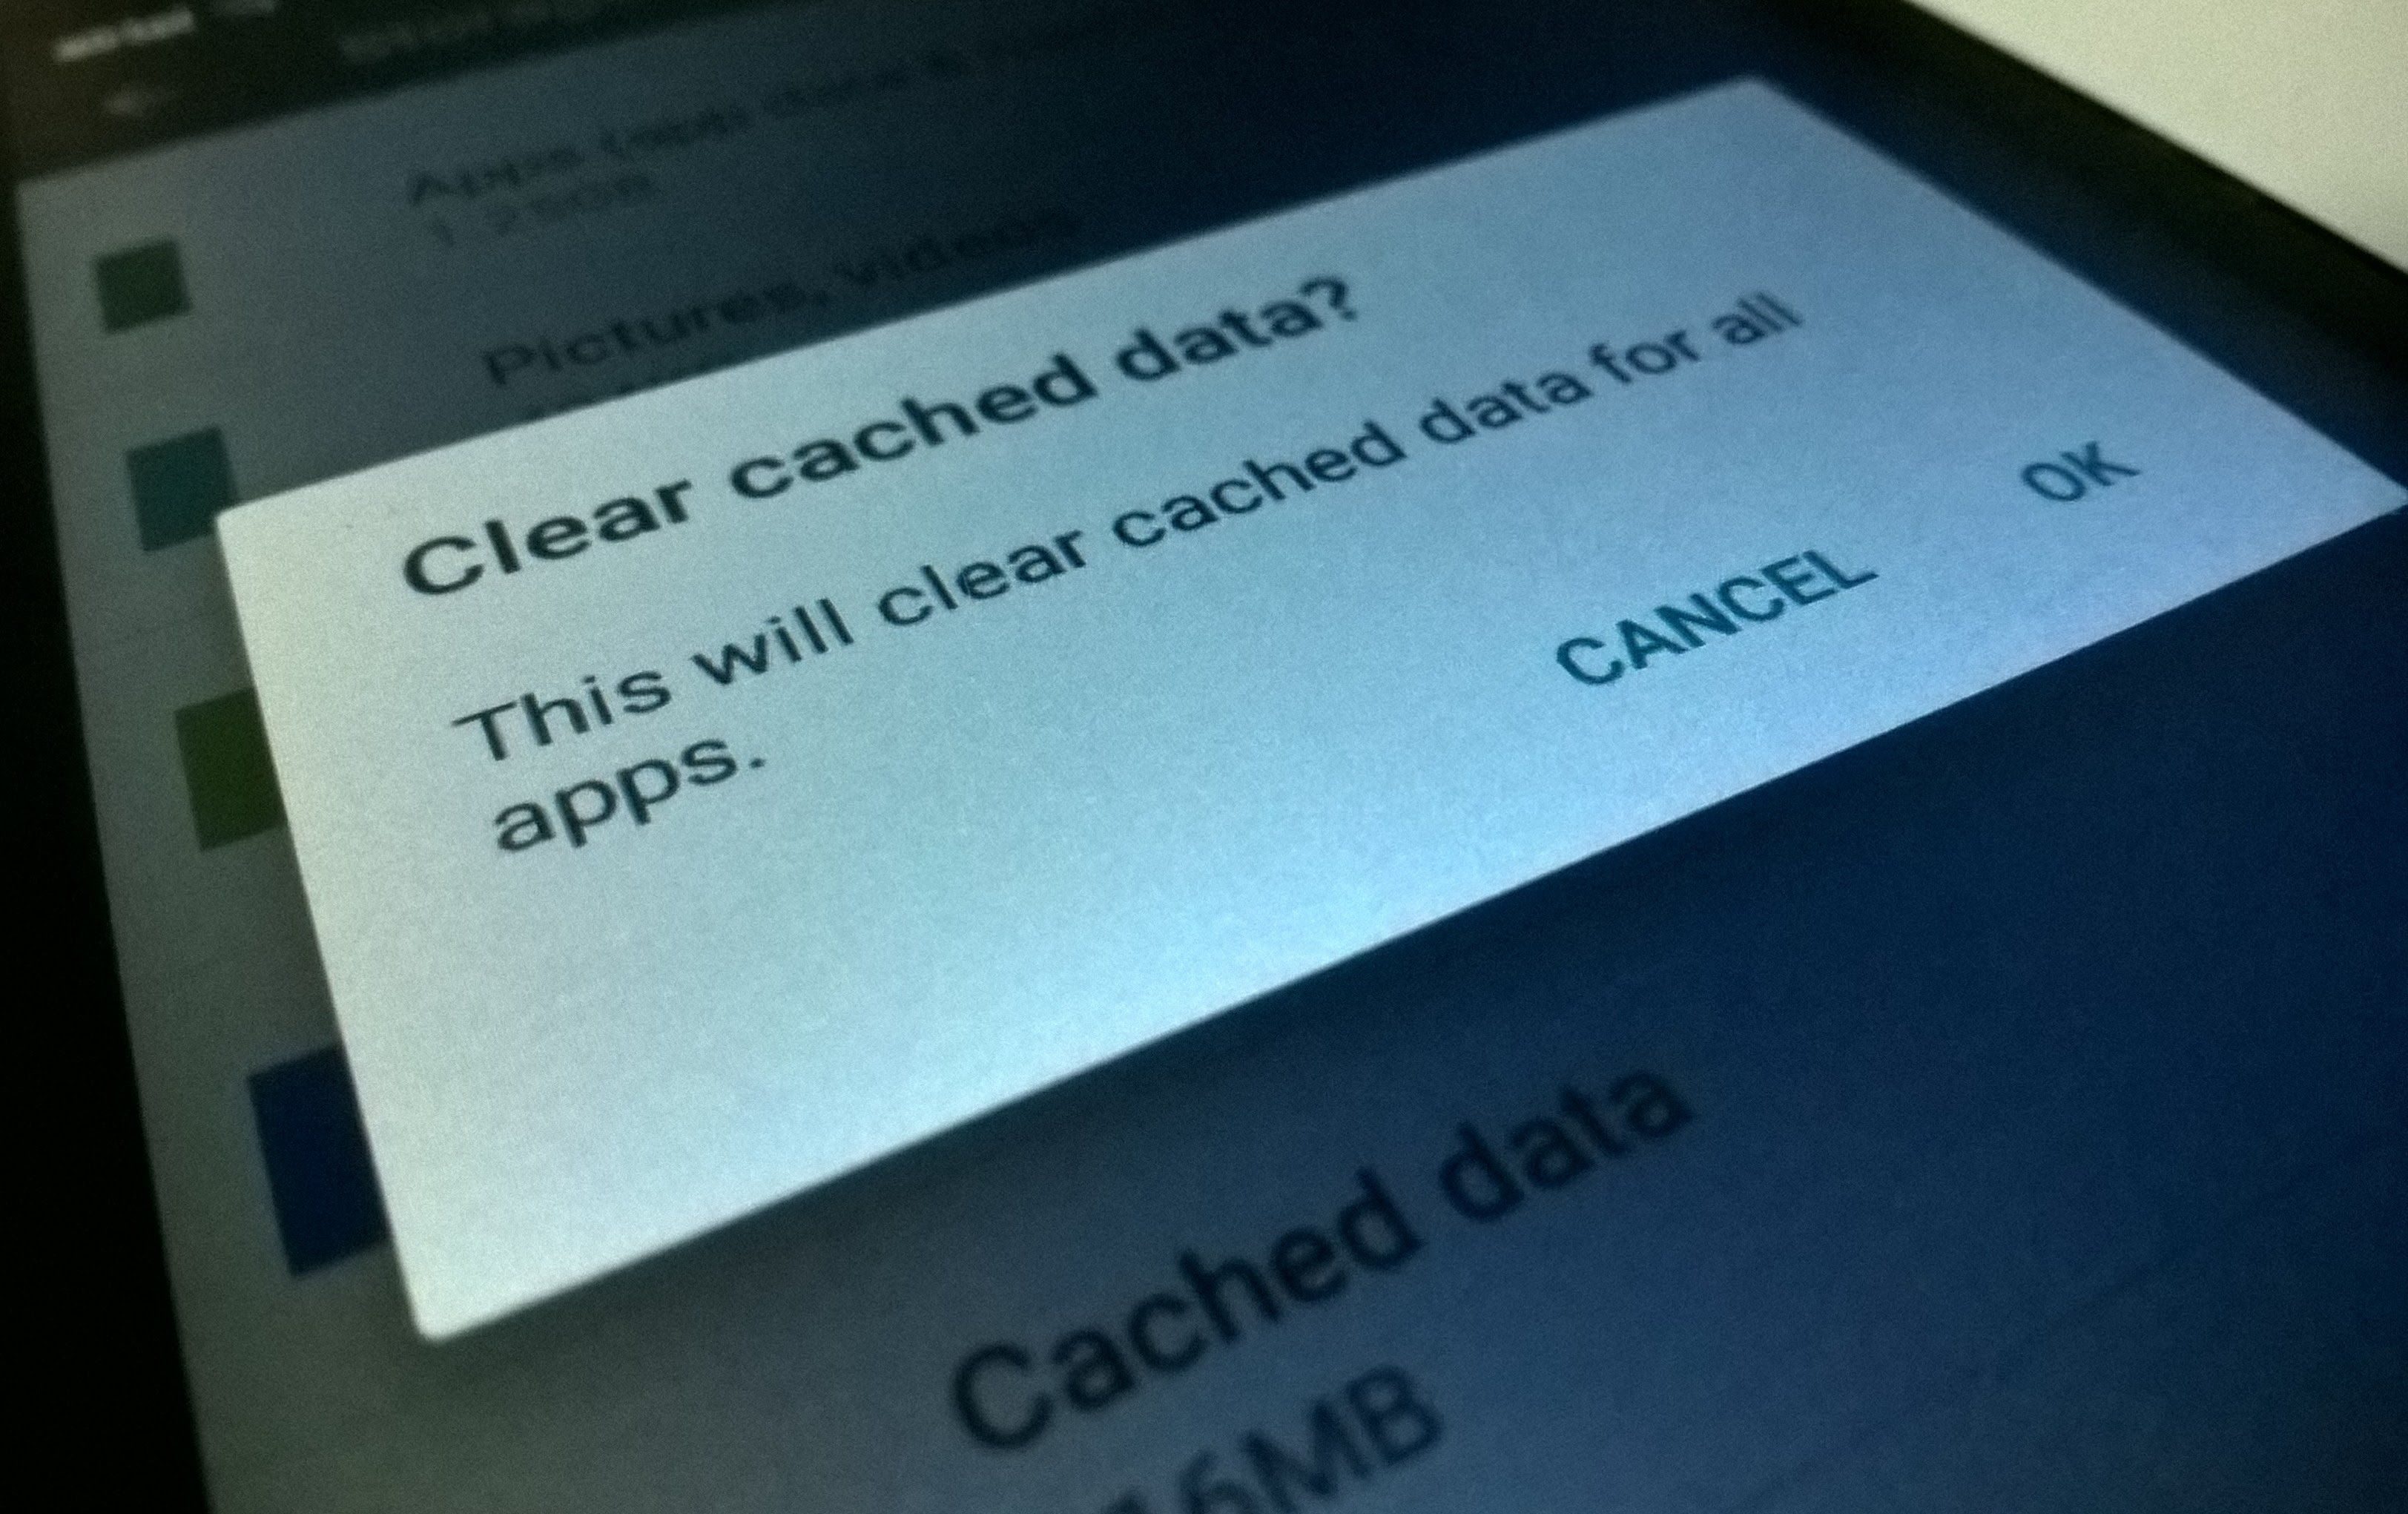 Clean up cache to free up RAM from your android device